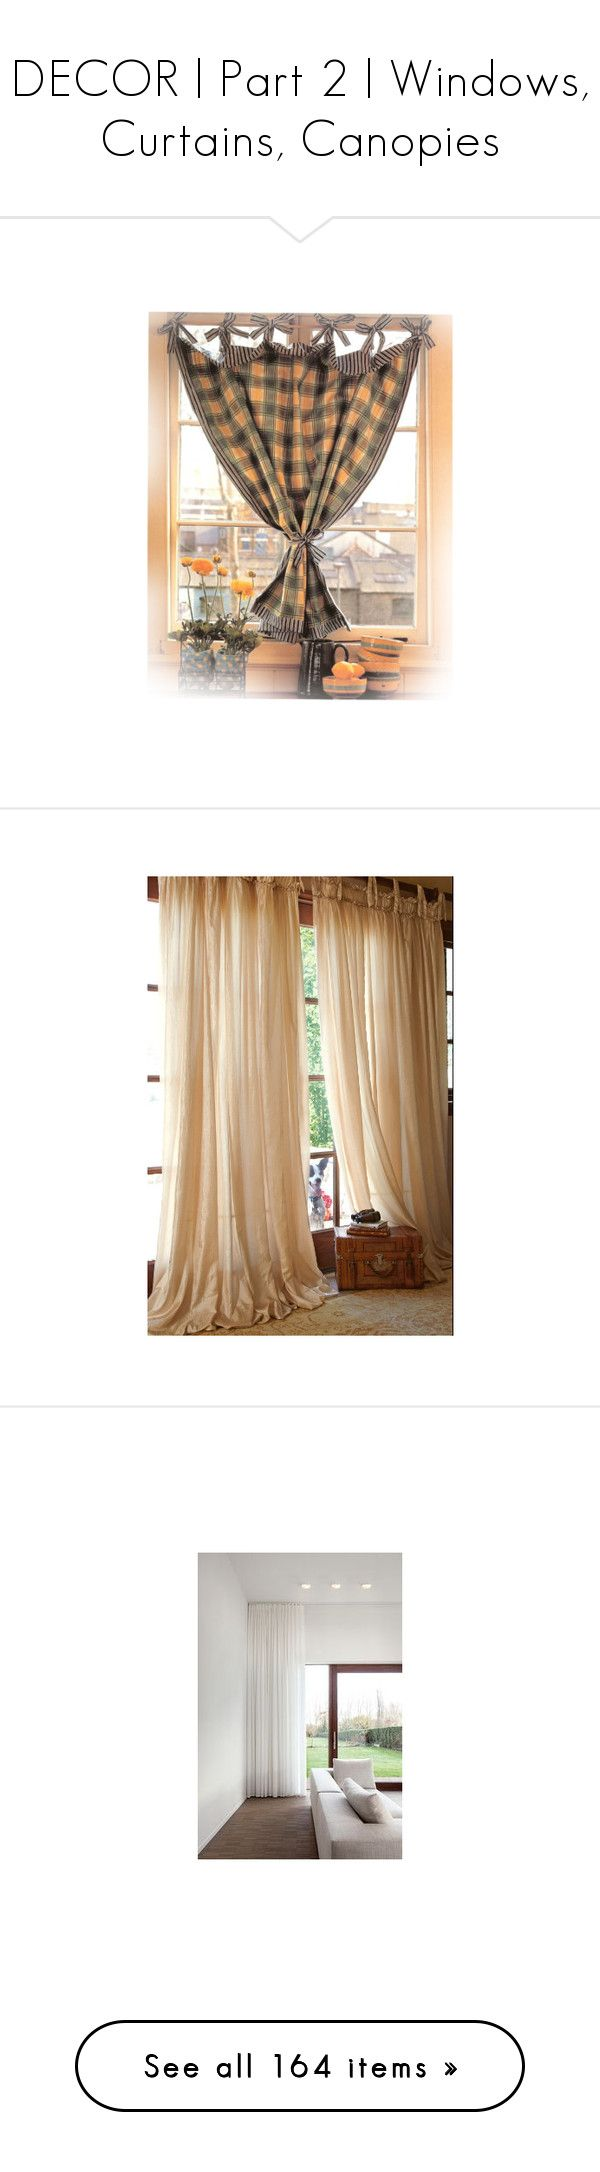 Ho how to tie balloon curtains -  Decor Part 2 Windows Curtains Canopies By Annmaira Liked